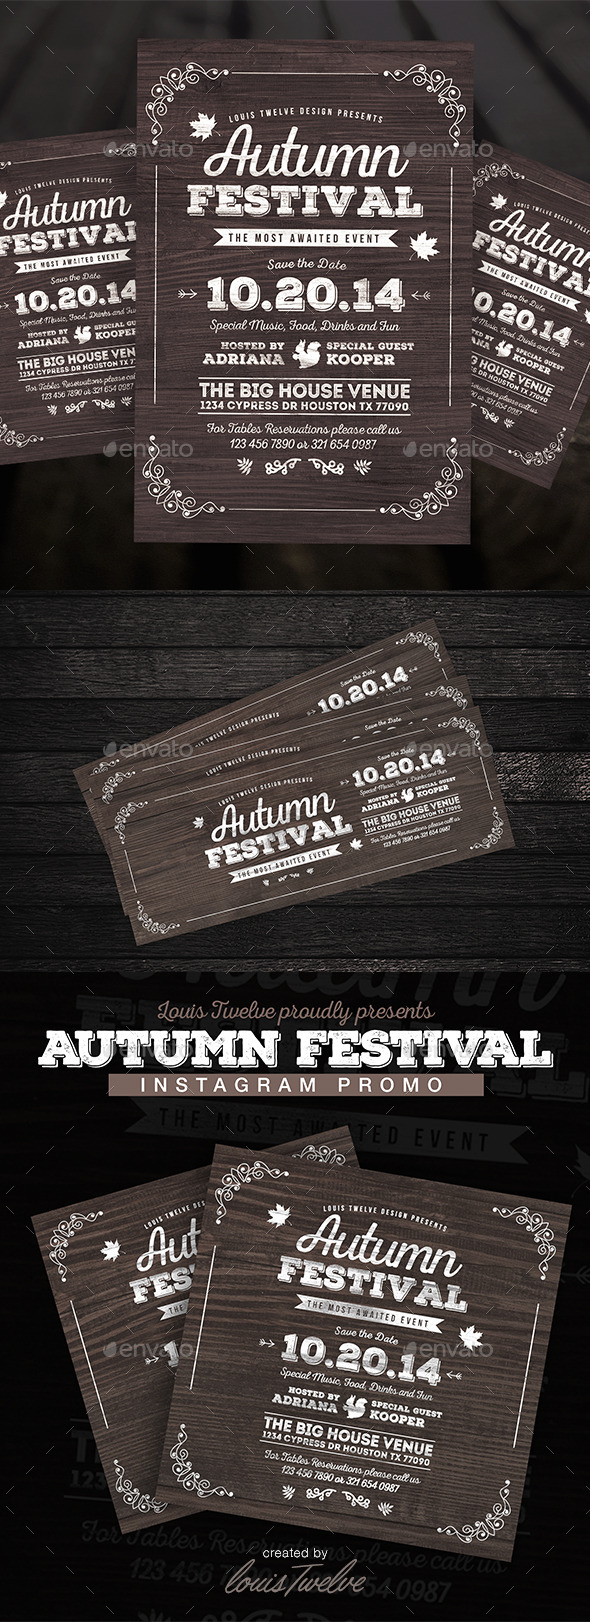 Vintage Autumn Festival Flyer - 3PSD - Holidays Events